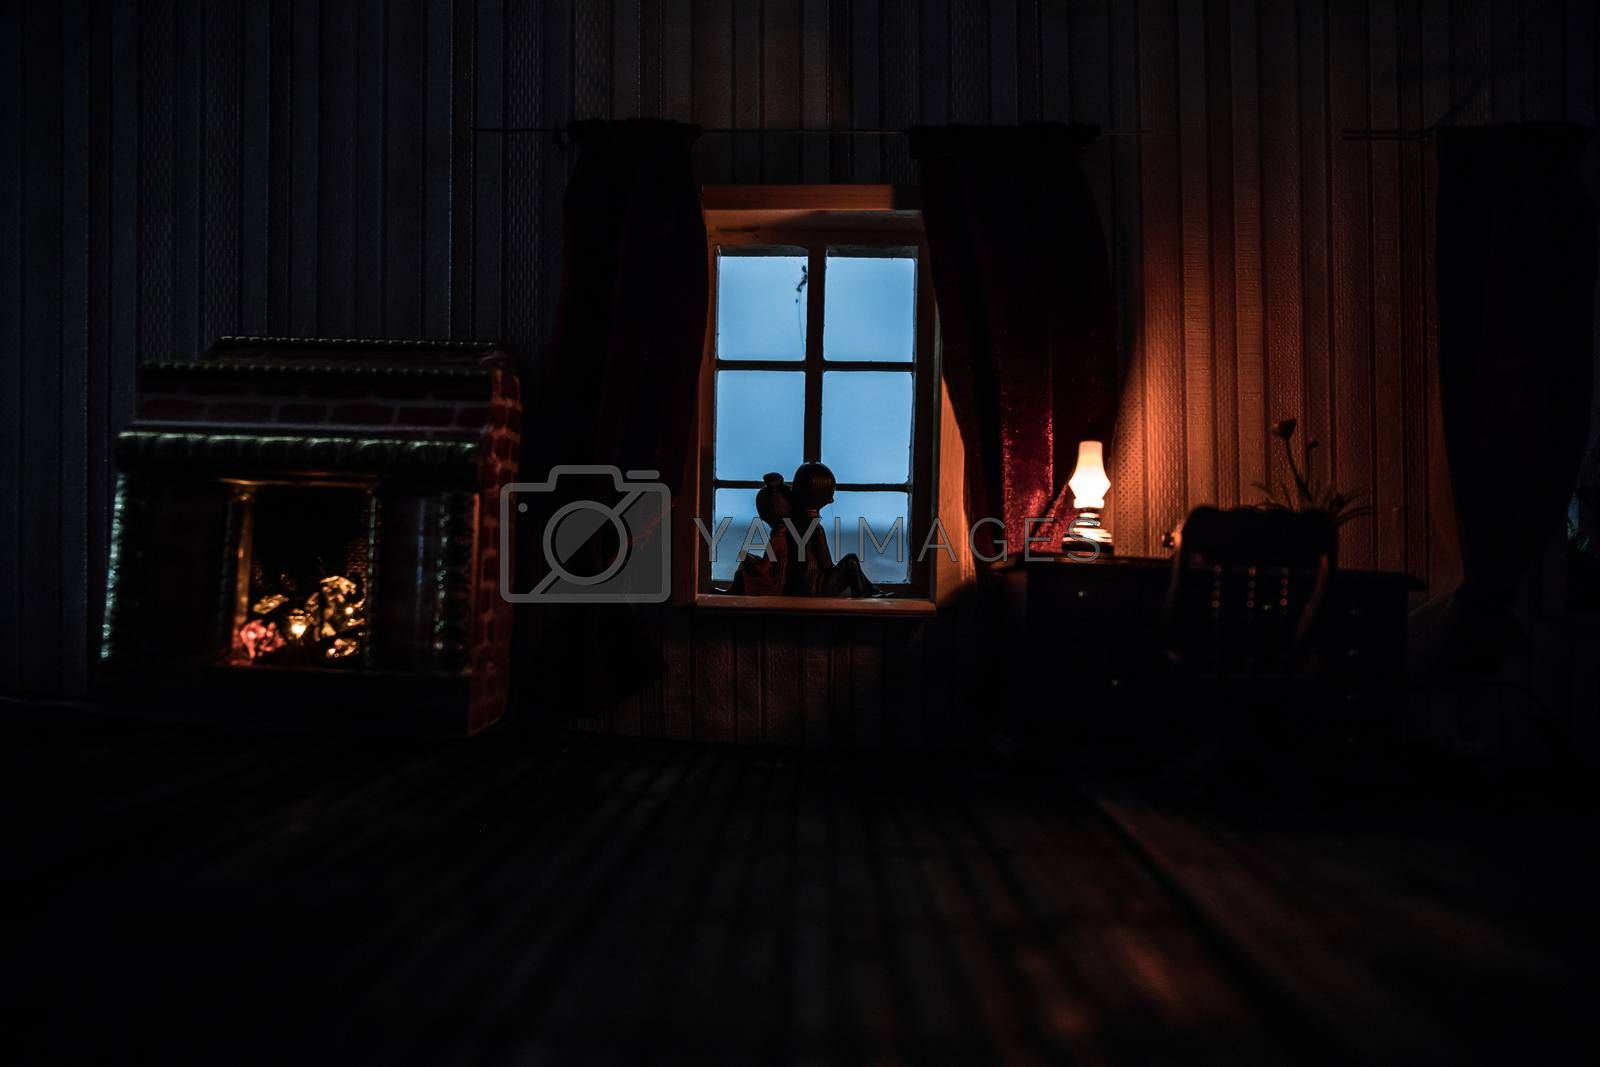 A realistic dollhouse living room with furniture and window at night. Romantic couple sitting on window. Artwork table decoration with handmade realistic dollhouse. Selective focus.